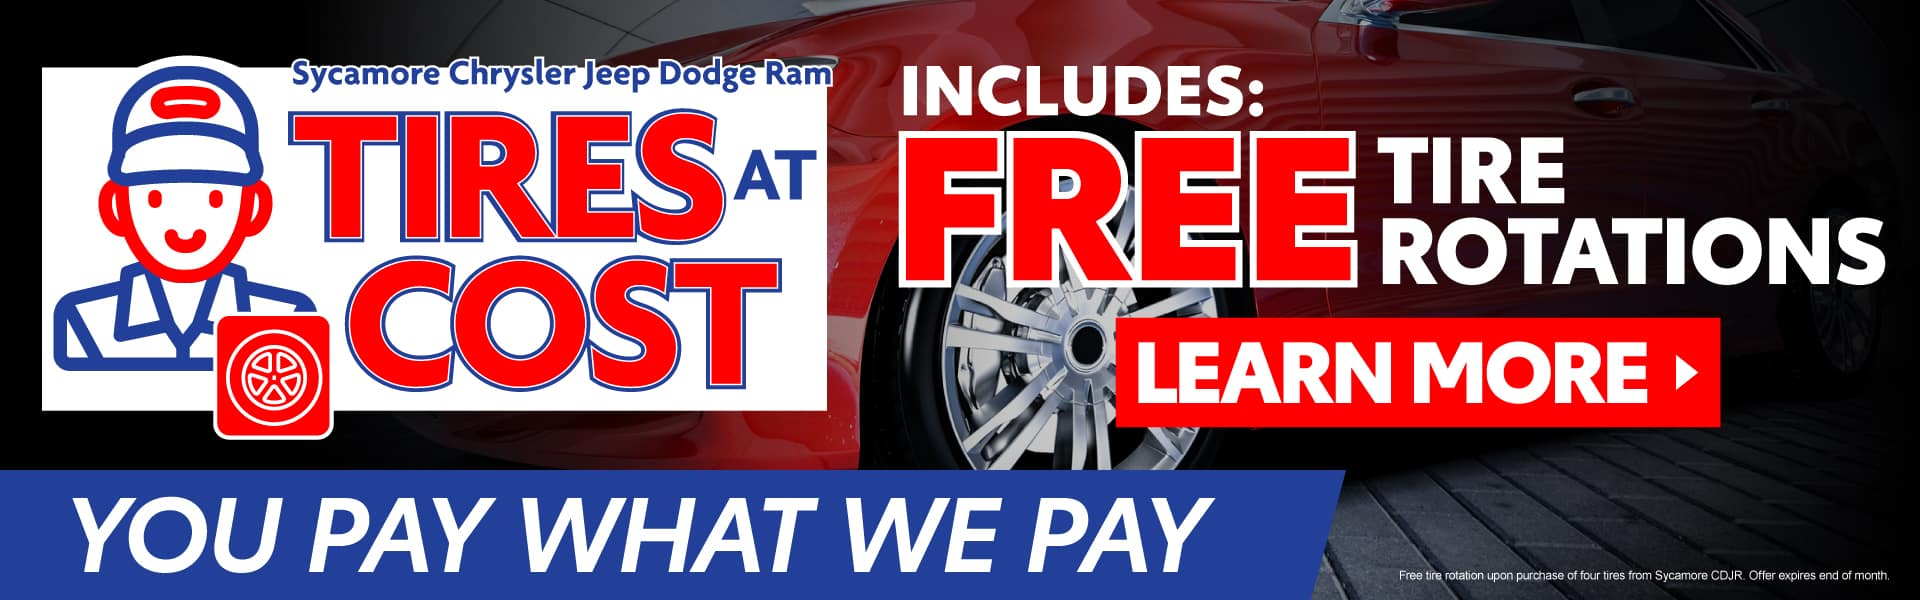 Tires at Cost - You Pay What We Pay - Learn More